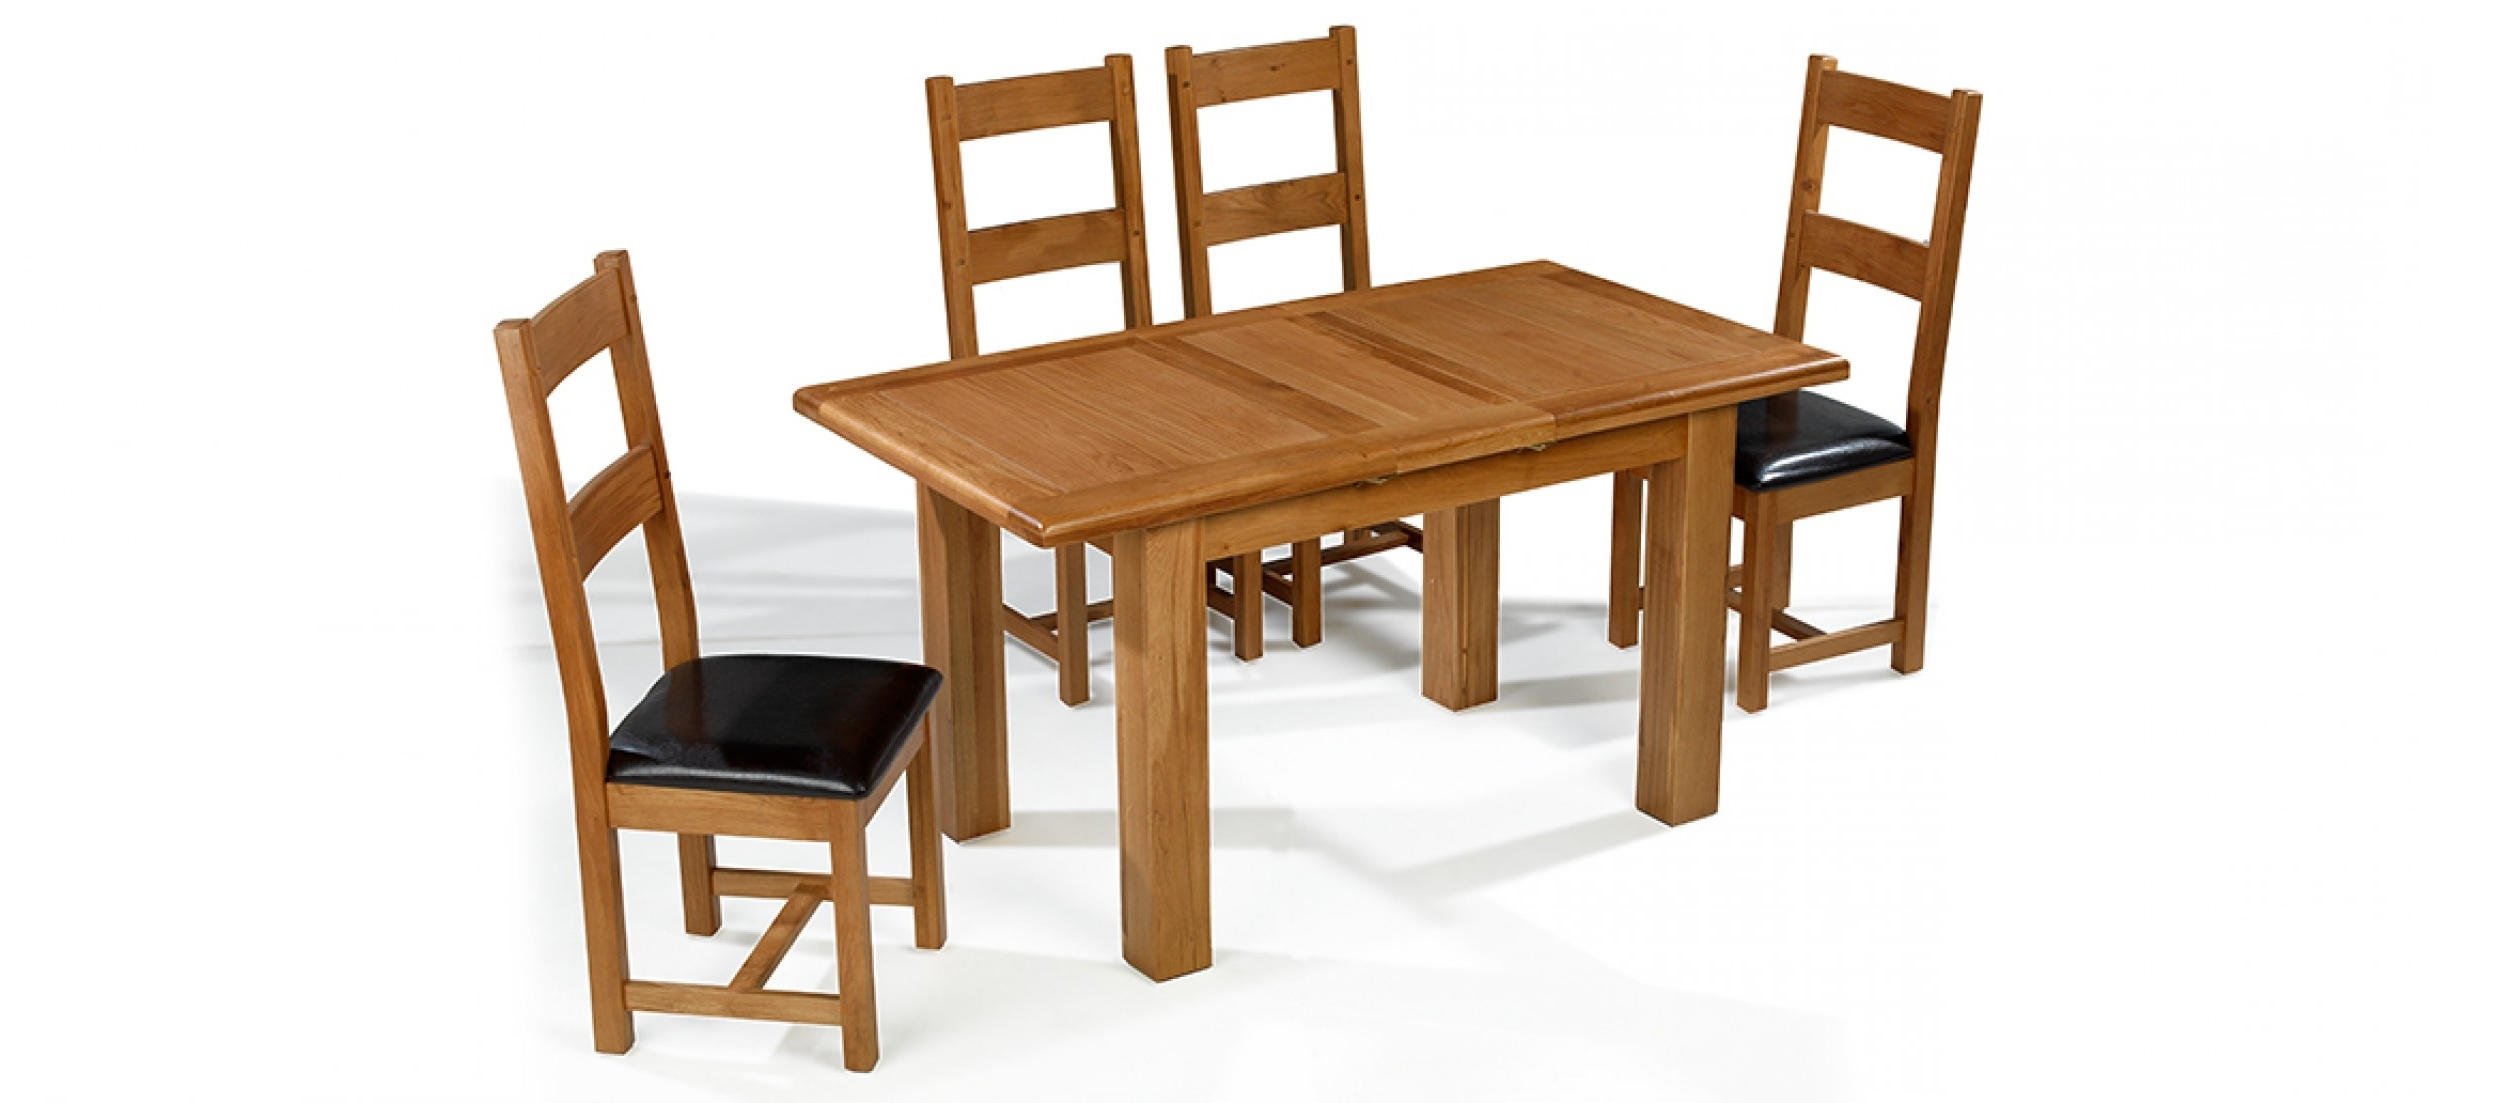 Widely Used Barham Oak 120 150 Cm Extending Dining Table And 4 Chairs (View 7 of 25)